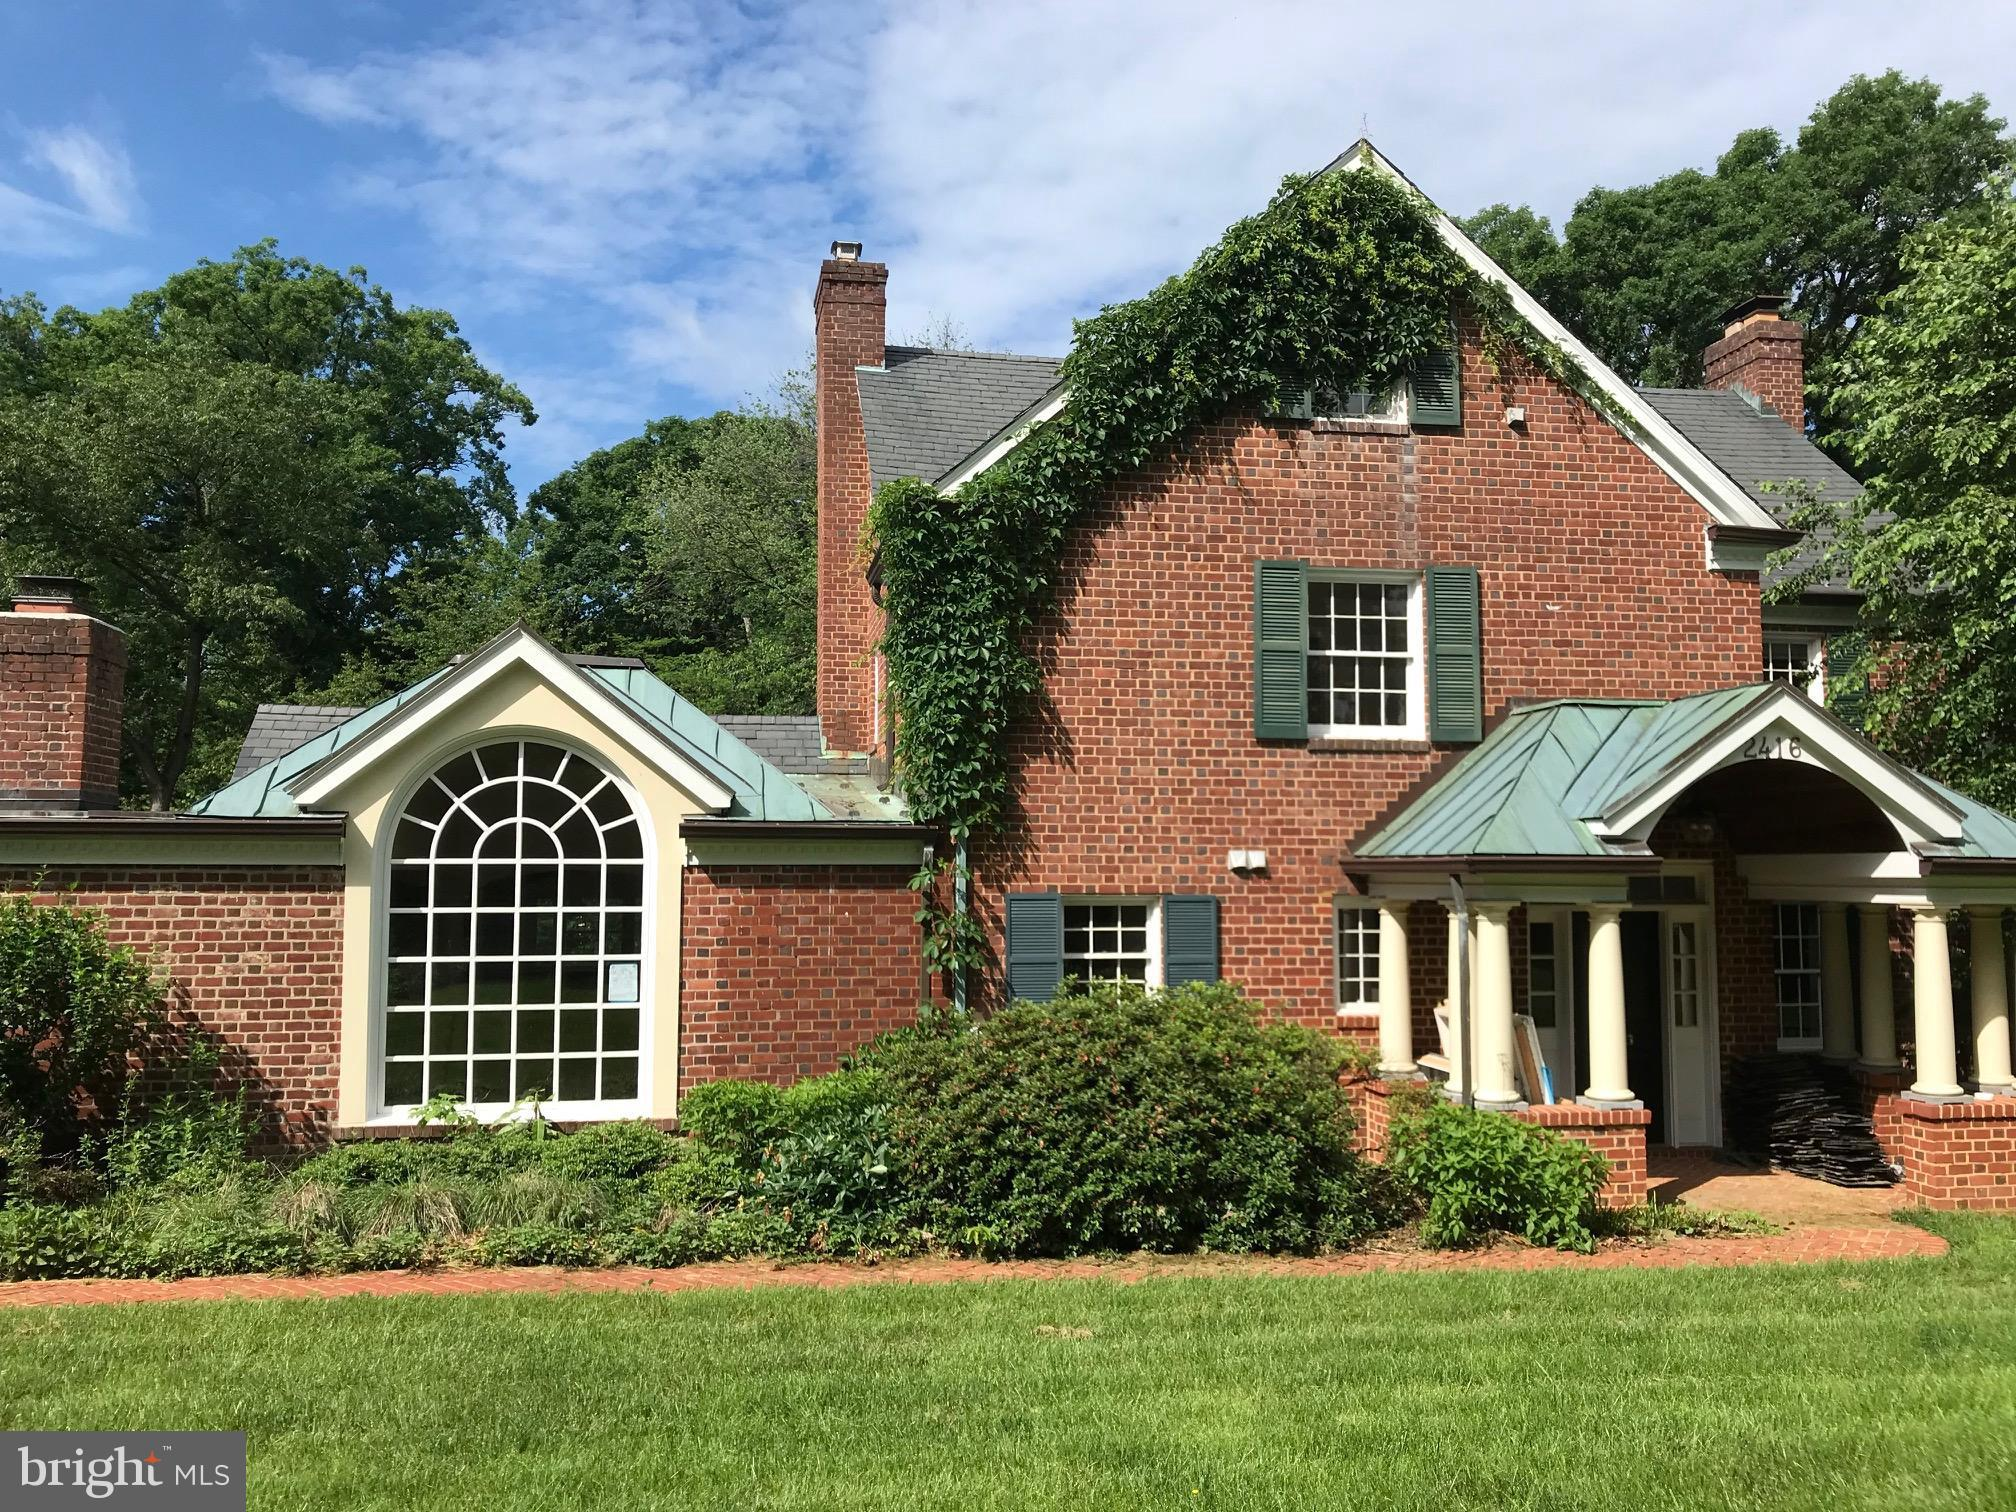 Gorgeous renovation and addition to a classic brick colonial.  With 4 finished levels, gorgeous chef's kitchen, spacious family room, spacious master bedroom with luxurious bath all sited on a large lot.  Photo is of existing house which will be renovated and expanded.